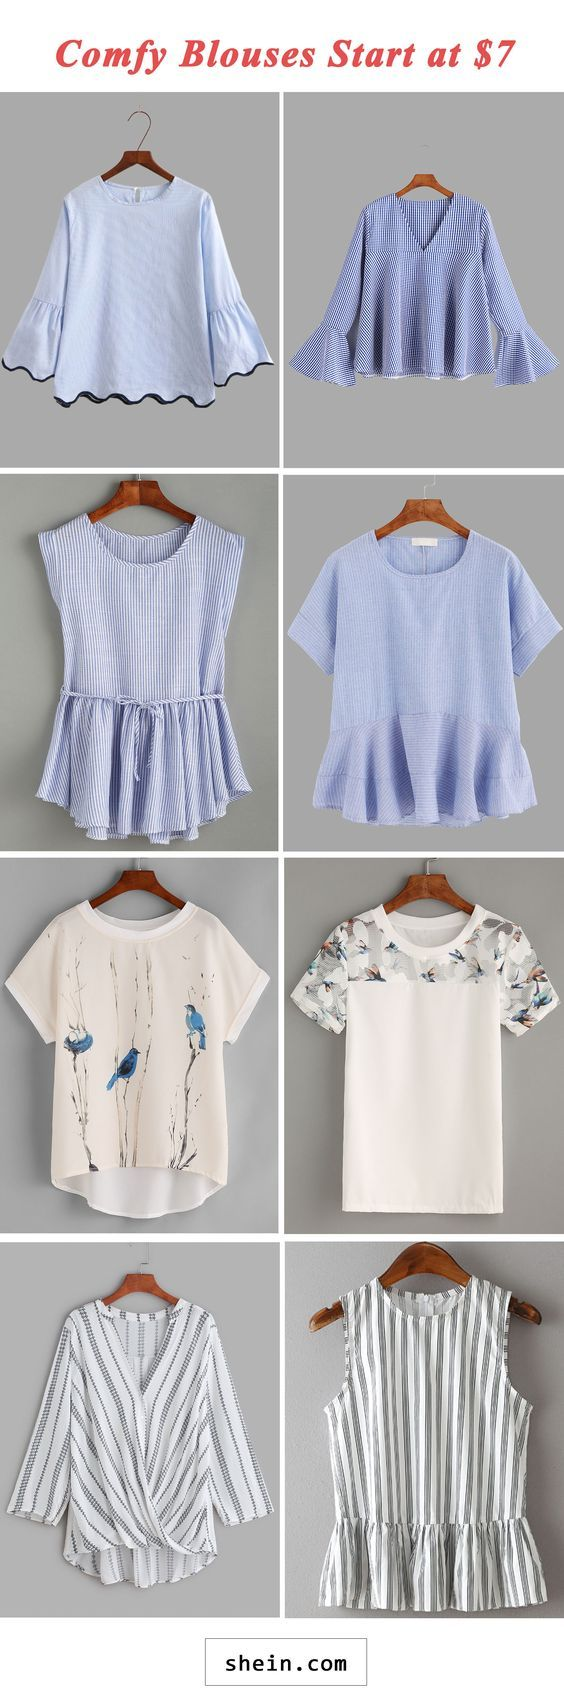 Comfy Blouses Start At 7 Aproducts Clothes Shops Online Clothing